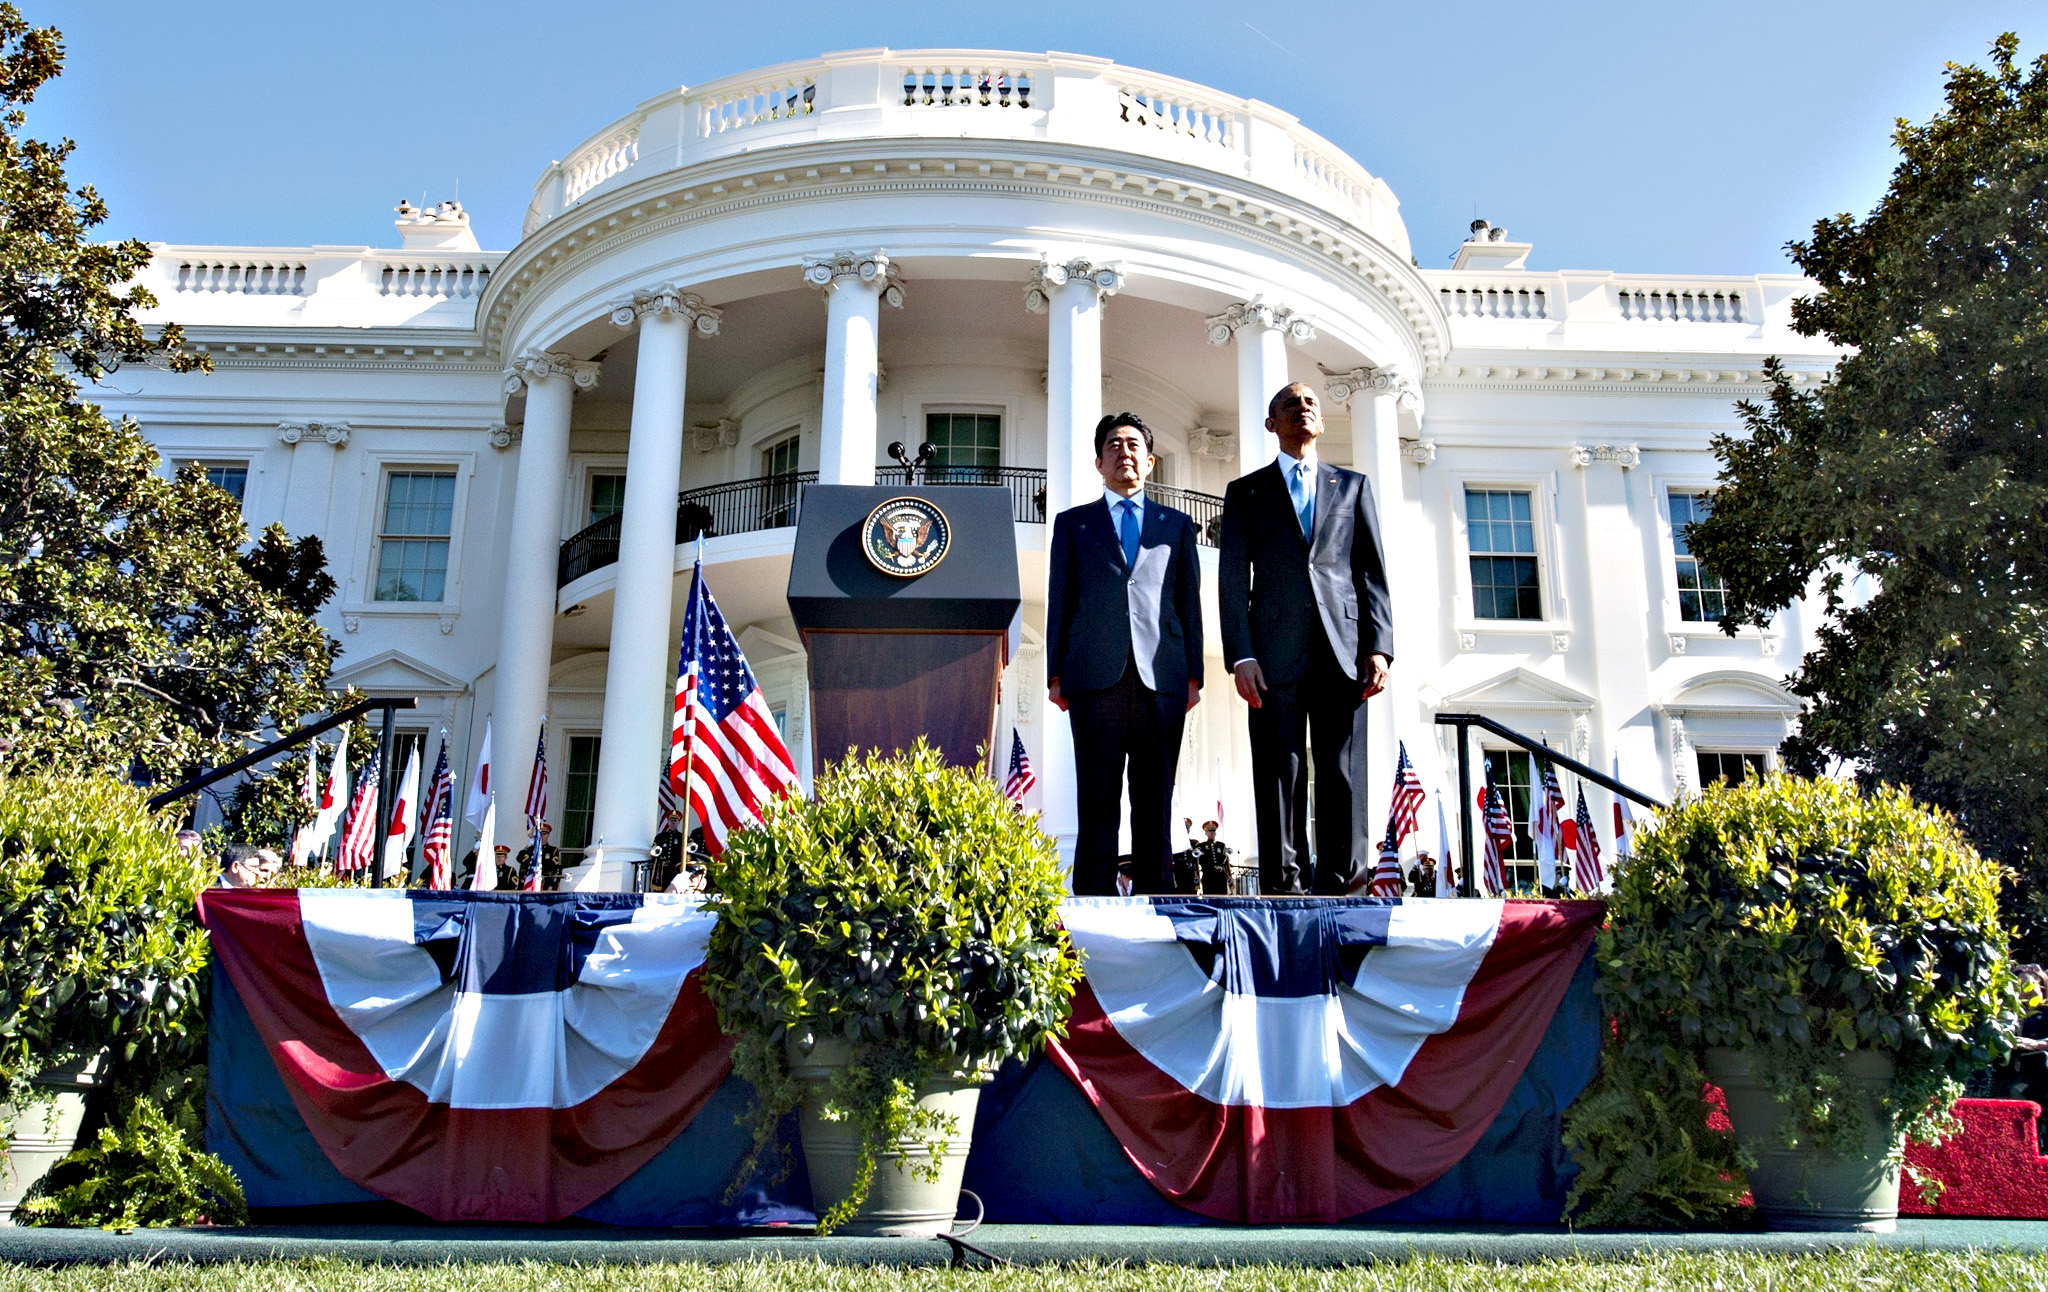 US President Barack Obama and Japanese Prime Minister Shinzo Abe attend official welcoming ceremonies on the South Lawn of the White House in Washington, DC, April 28, 2015.